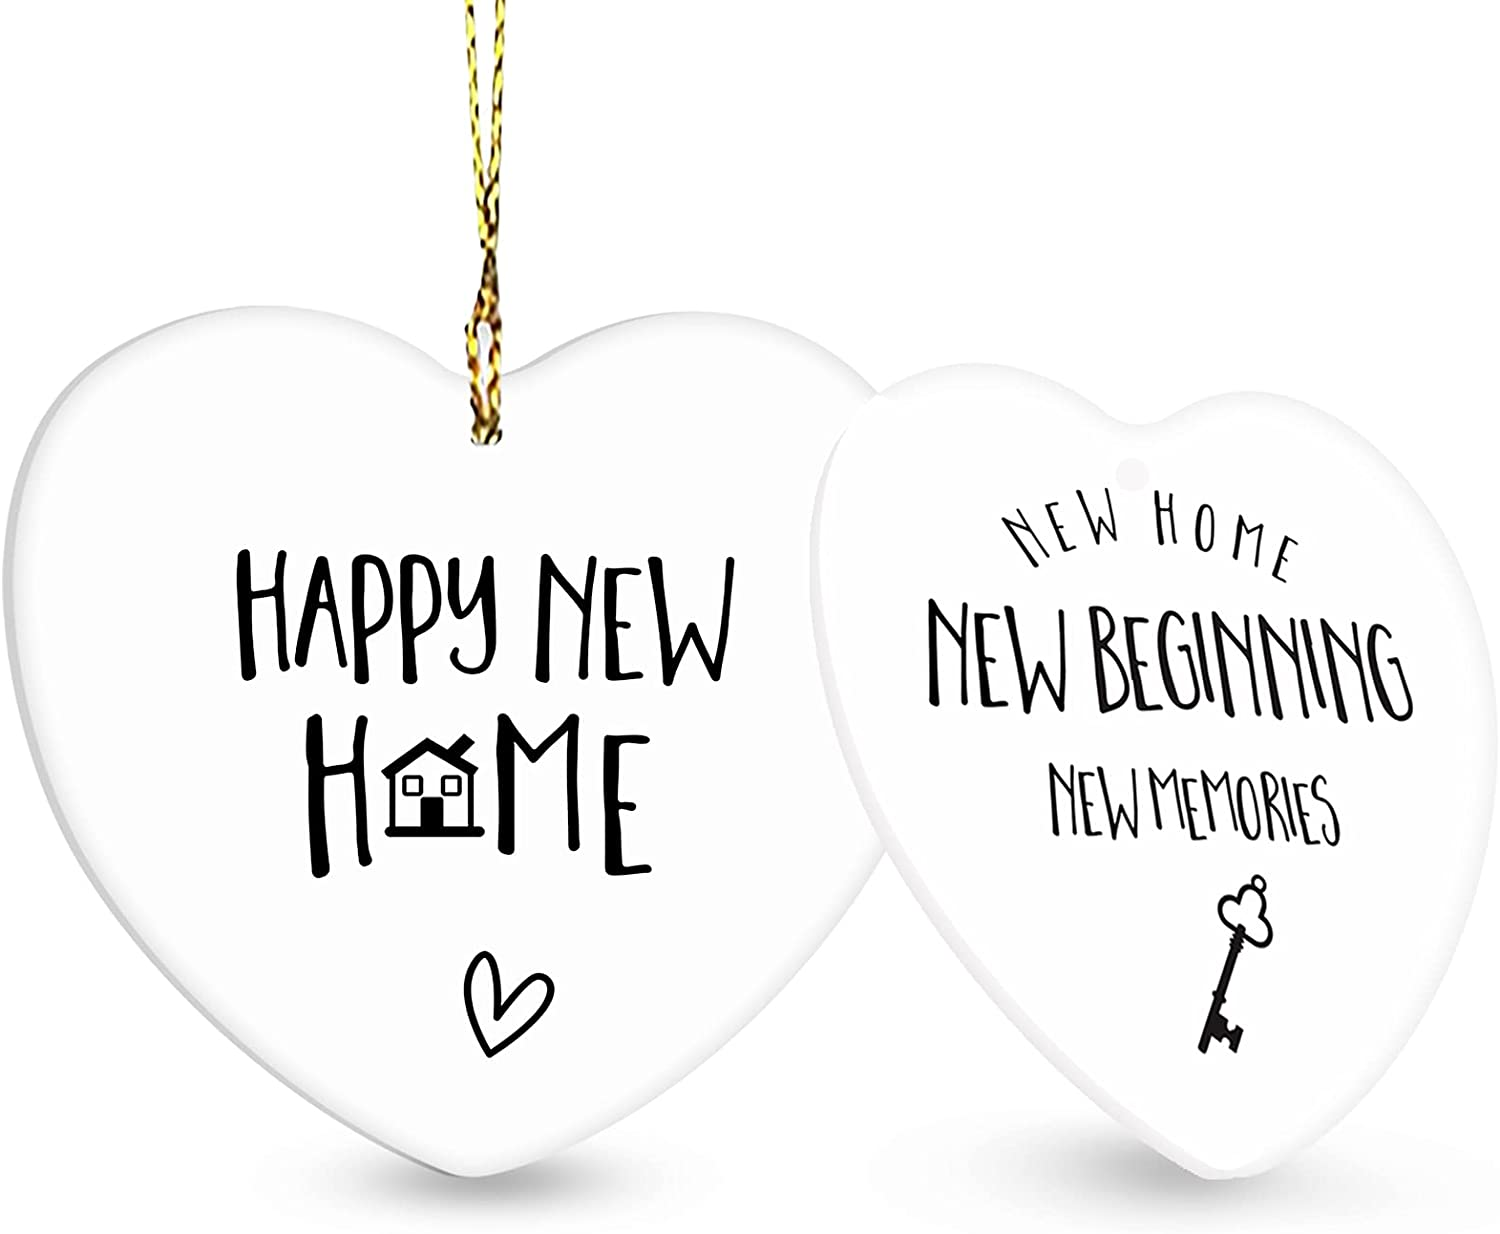 Housewarming Gift, New Home Gifts for Home Decor - Christmas Ornament 2021, House Warming Presents for New Home Funny, Housewarming Gifts for New House, New Homeowner Gift Ideas